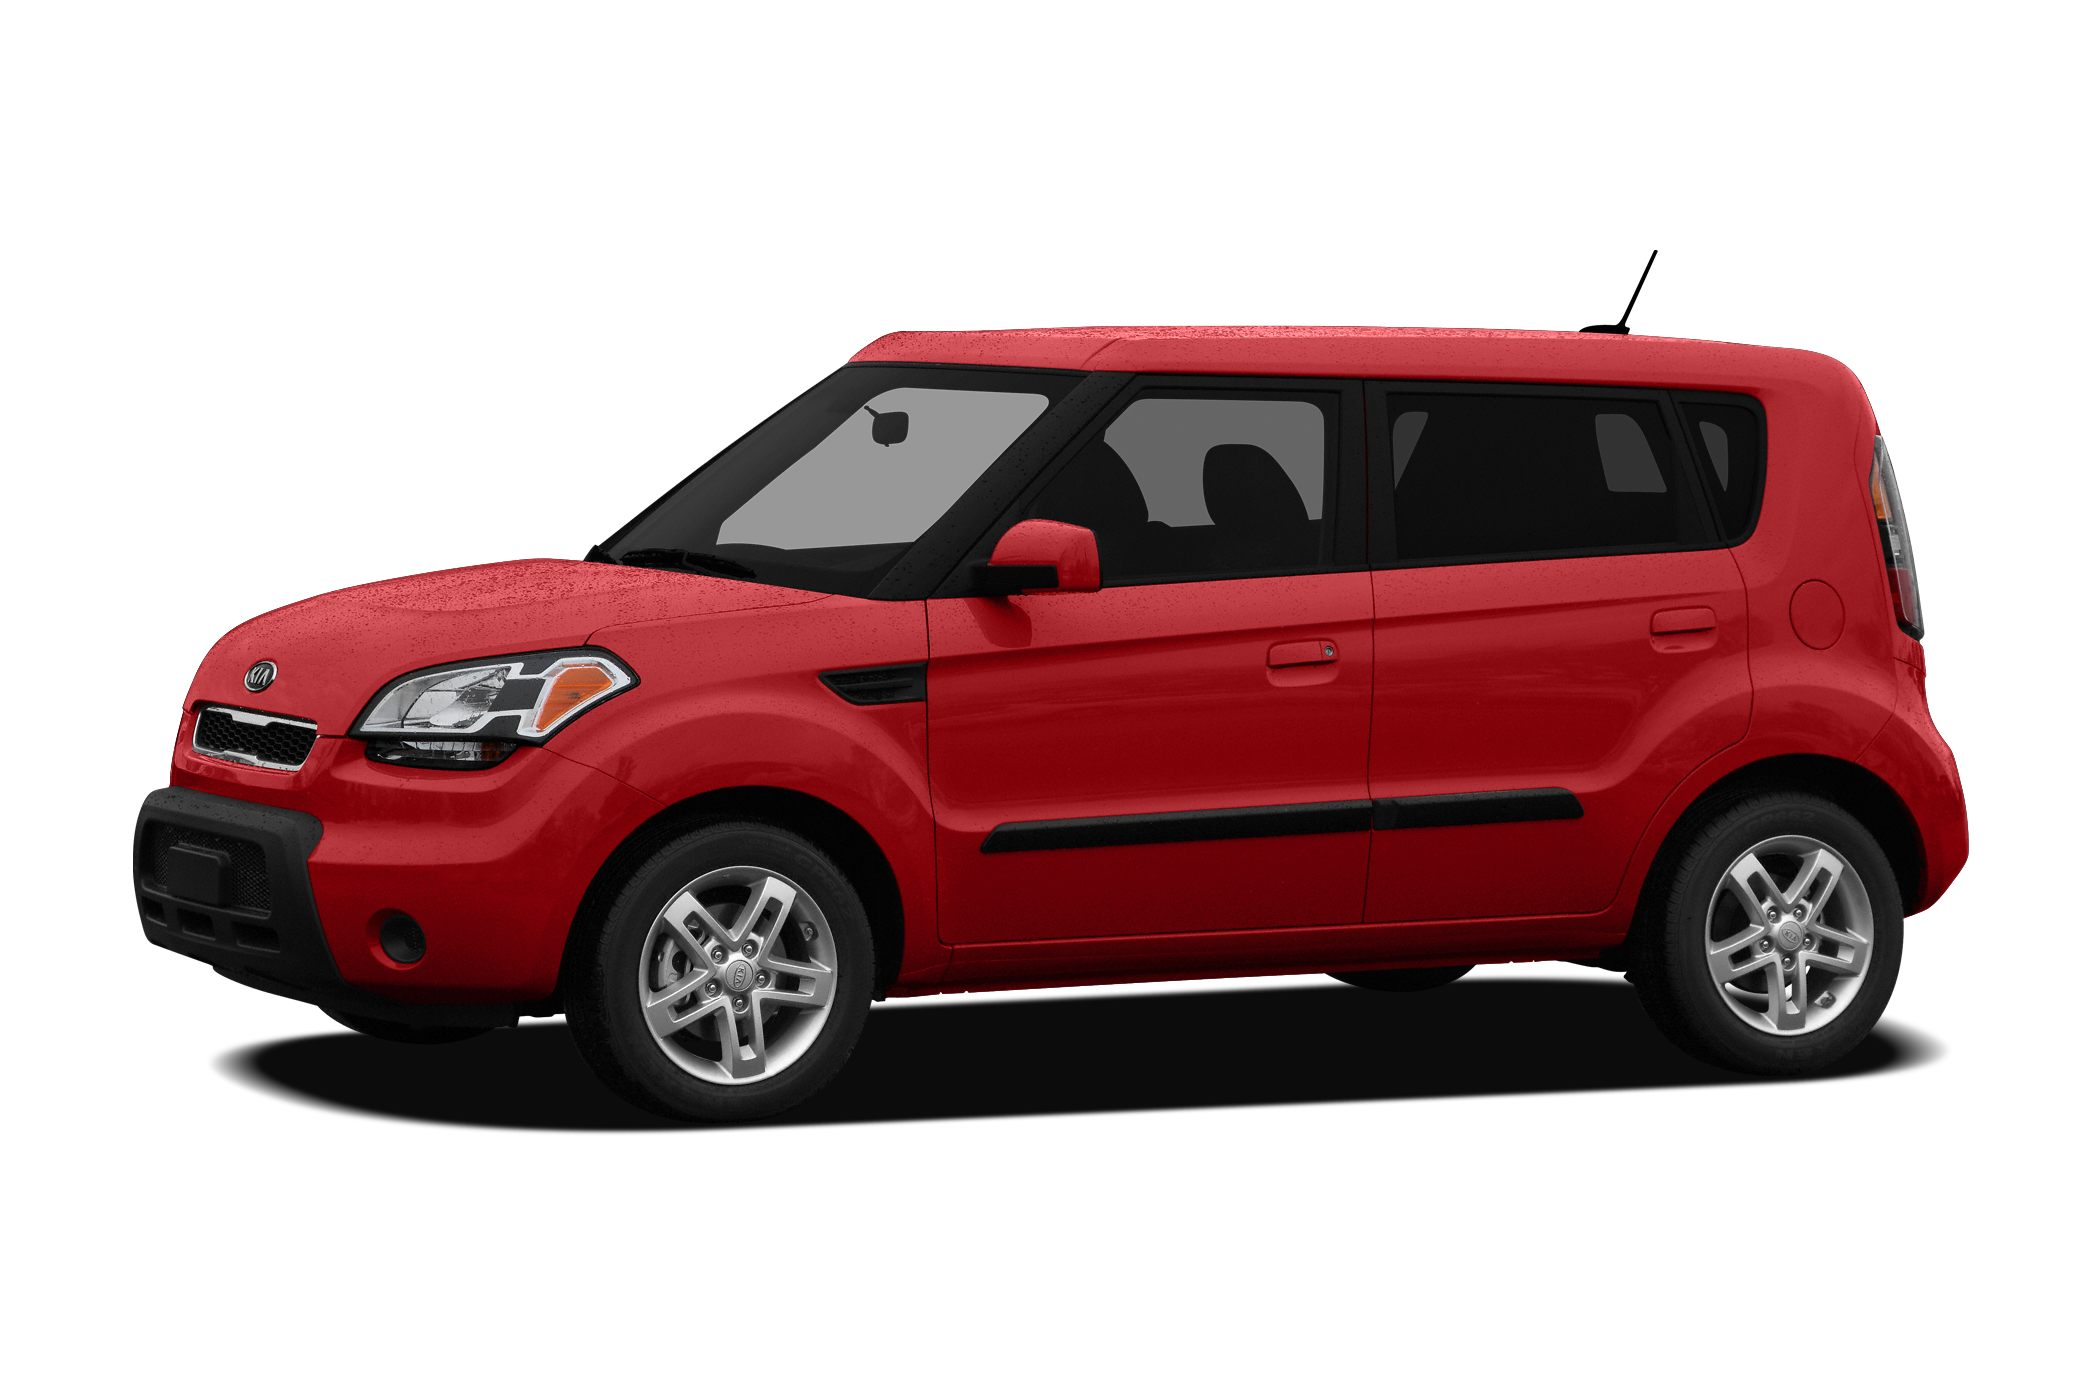 2010 Kia Soul  3 MONTH WARRANTY OFFERED ON OUR SELECTED PRE-OWNED INVENTORY and ALL USED INVENTORY